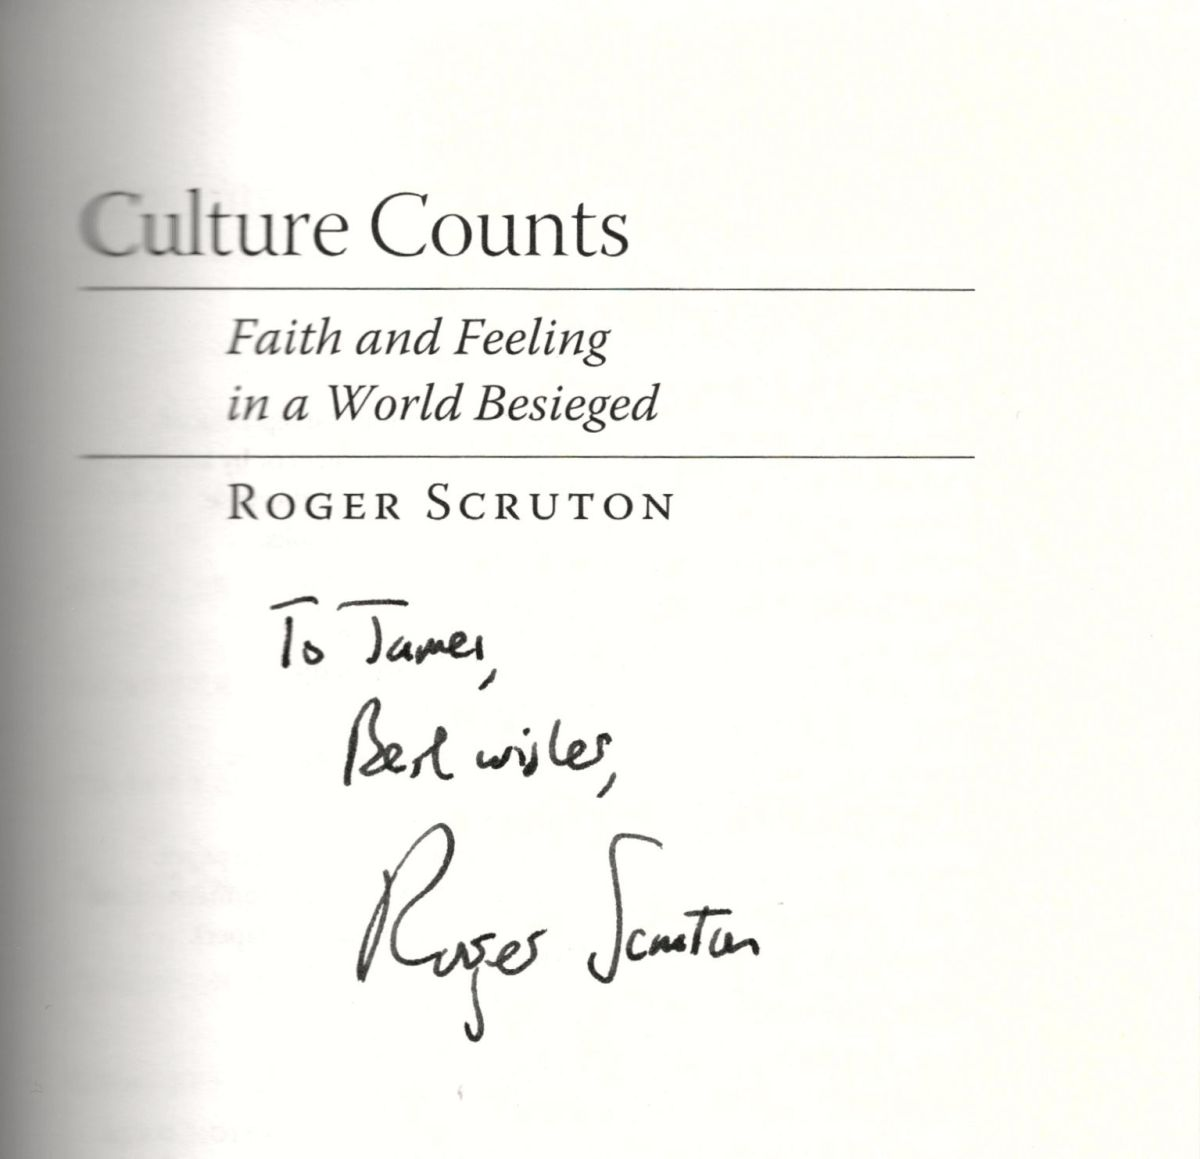 My signed copy of a Roger Scruton book